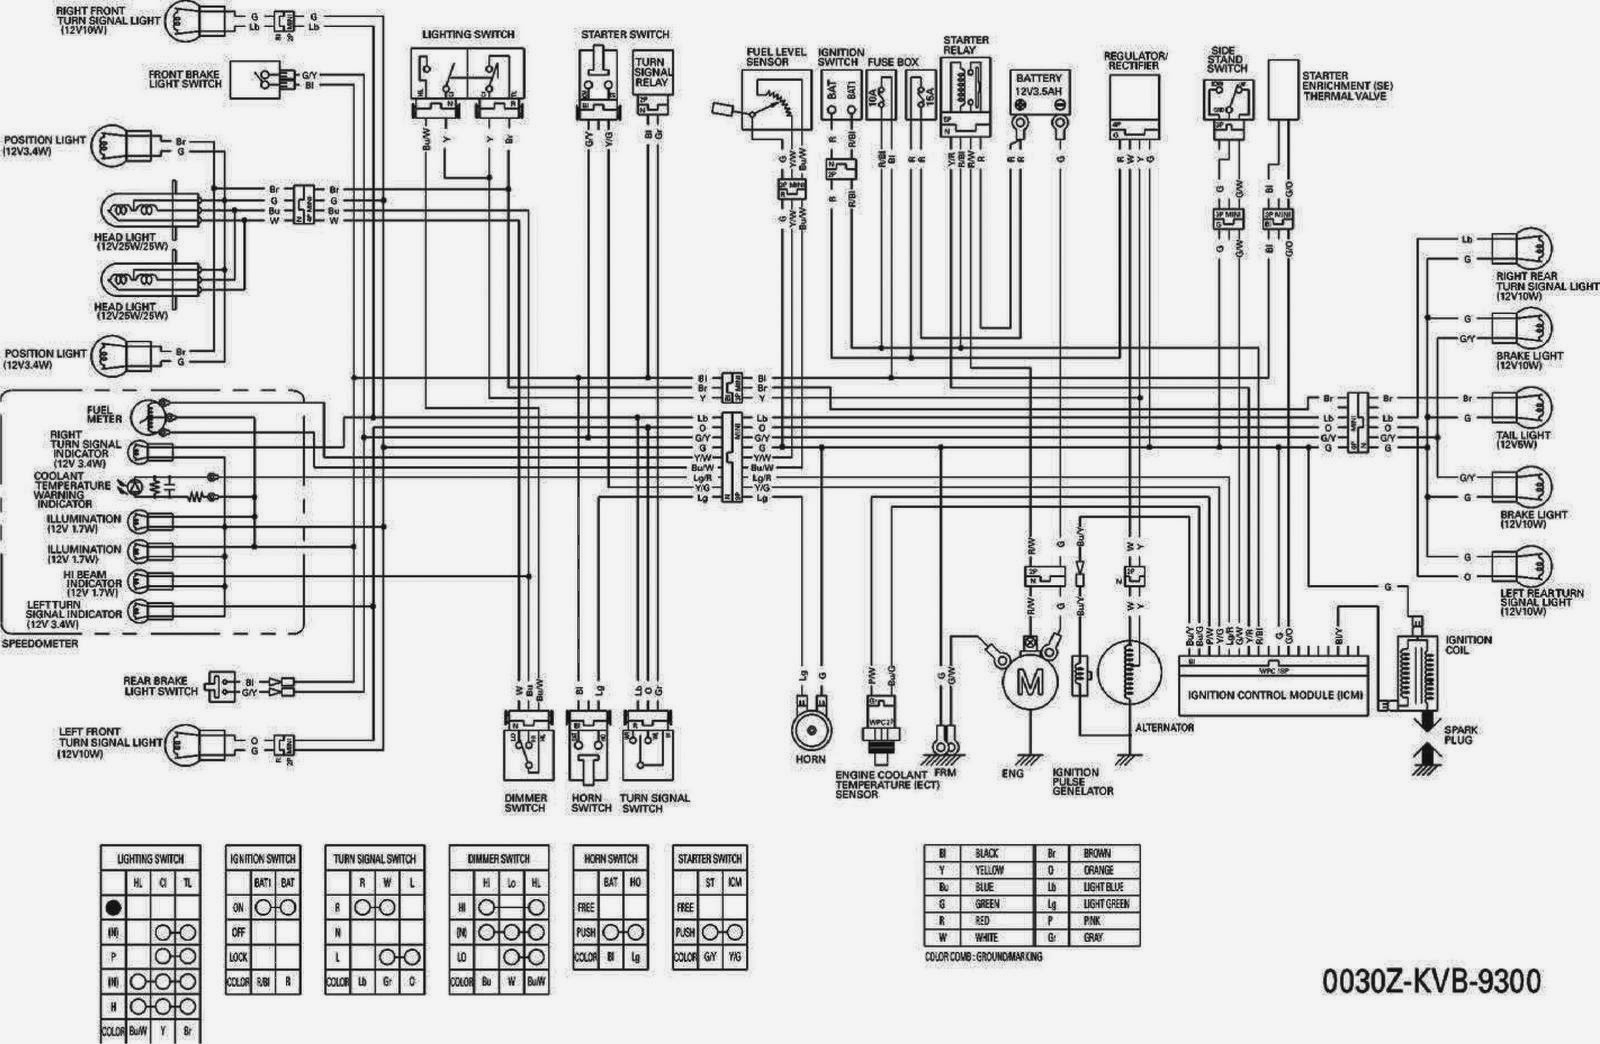 Wiring diagram nmax free download wiring diagram xwiaw wiring low colorful virago wiring diagram adornment electrical diagram ideas swarovskicordoba Image collections